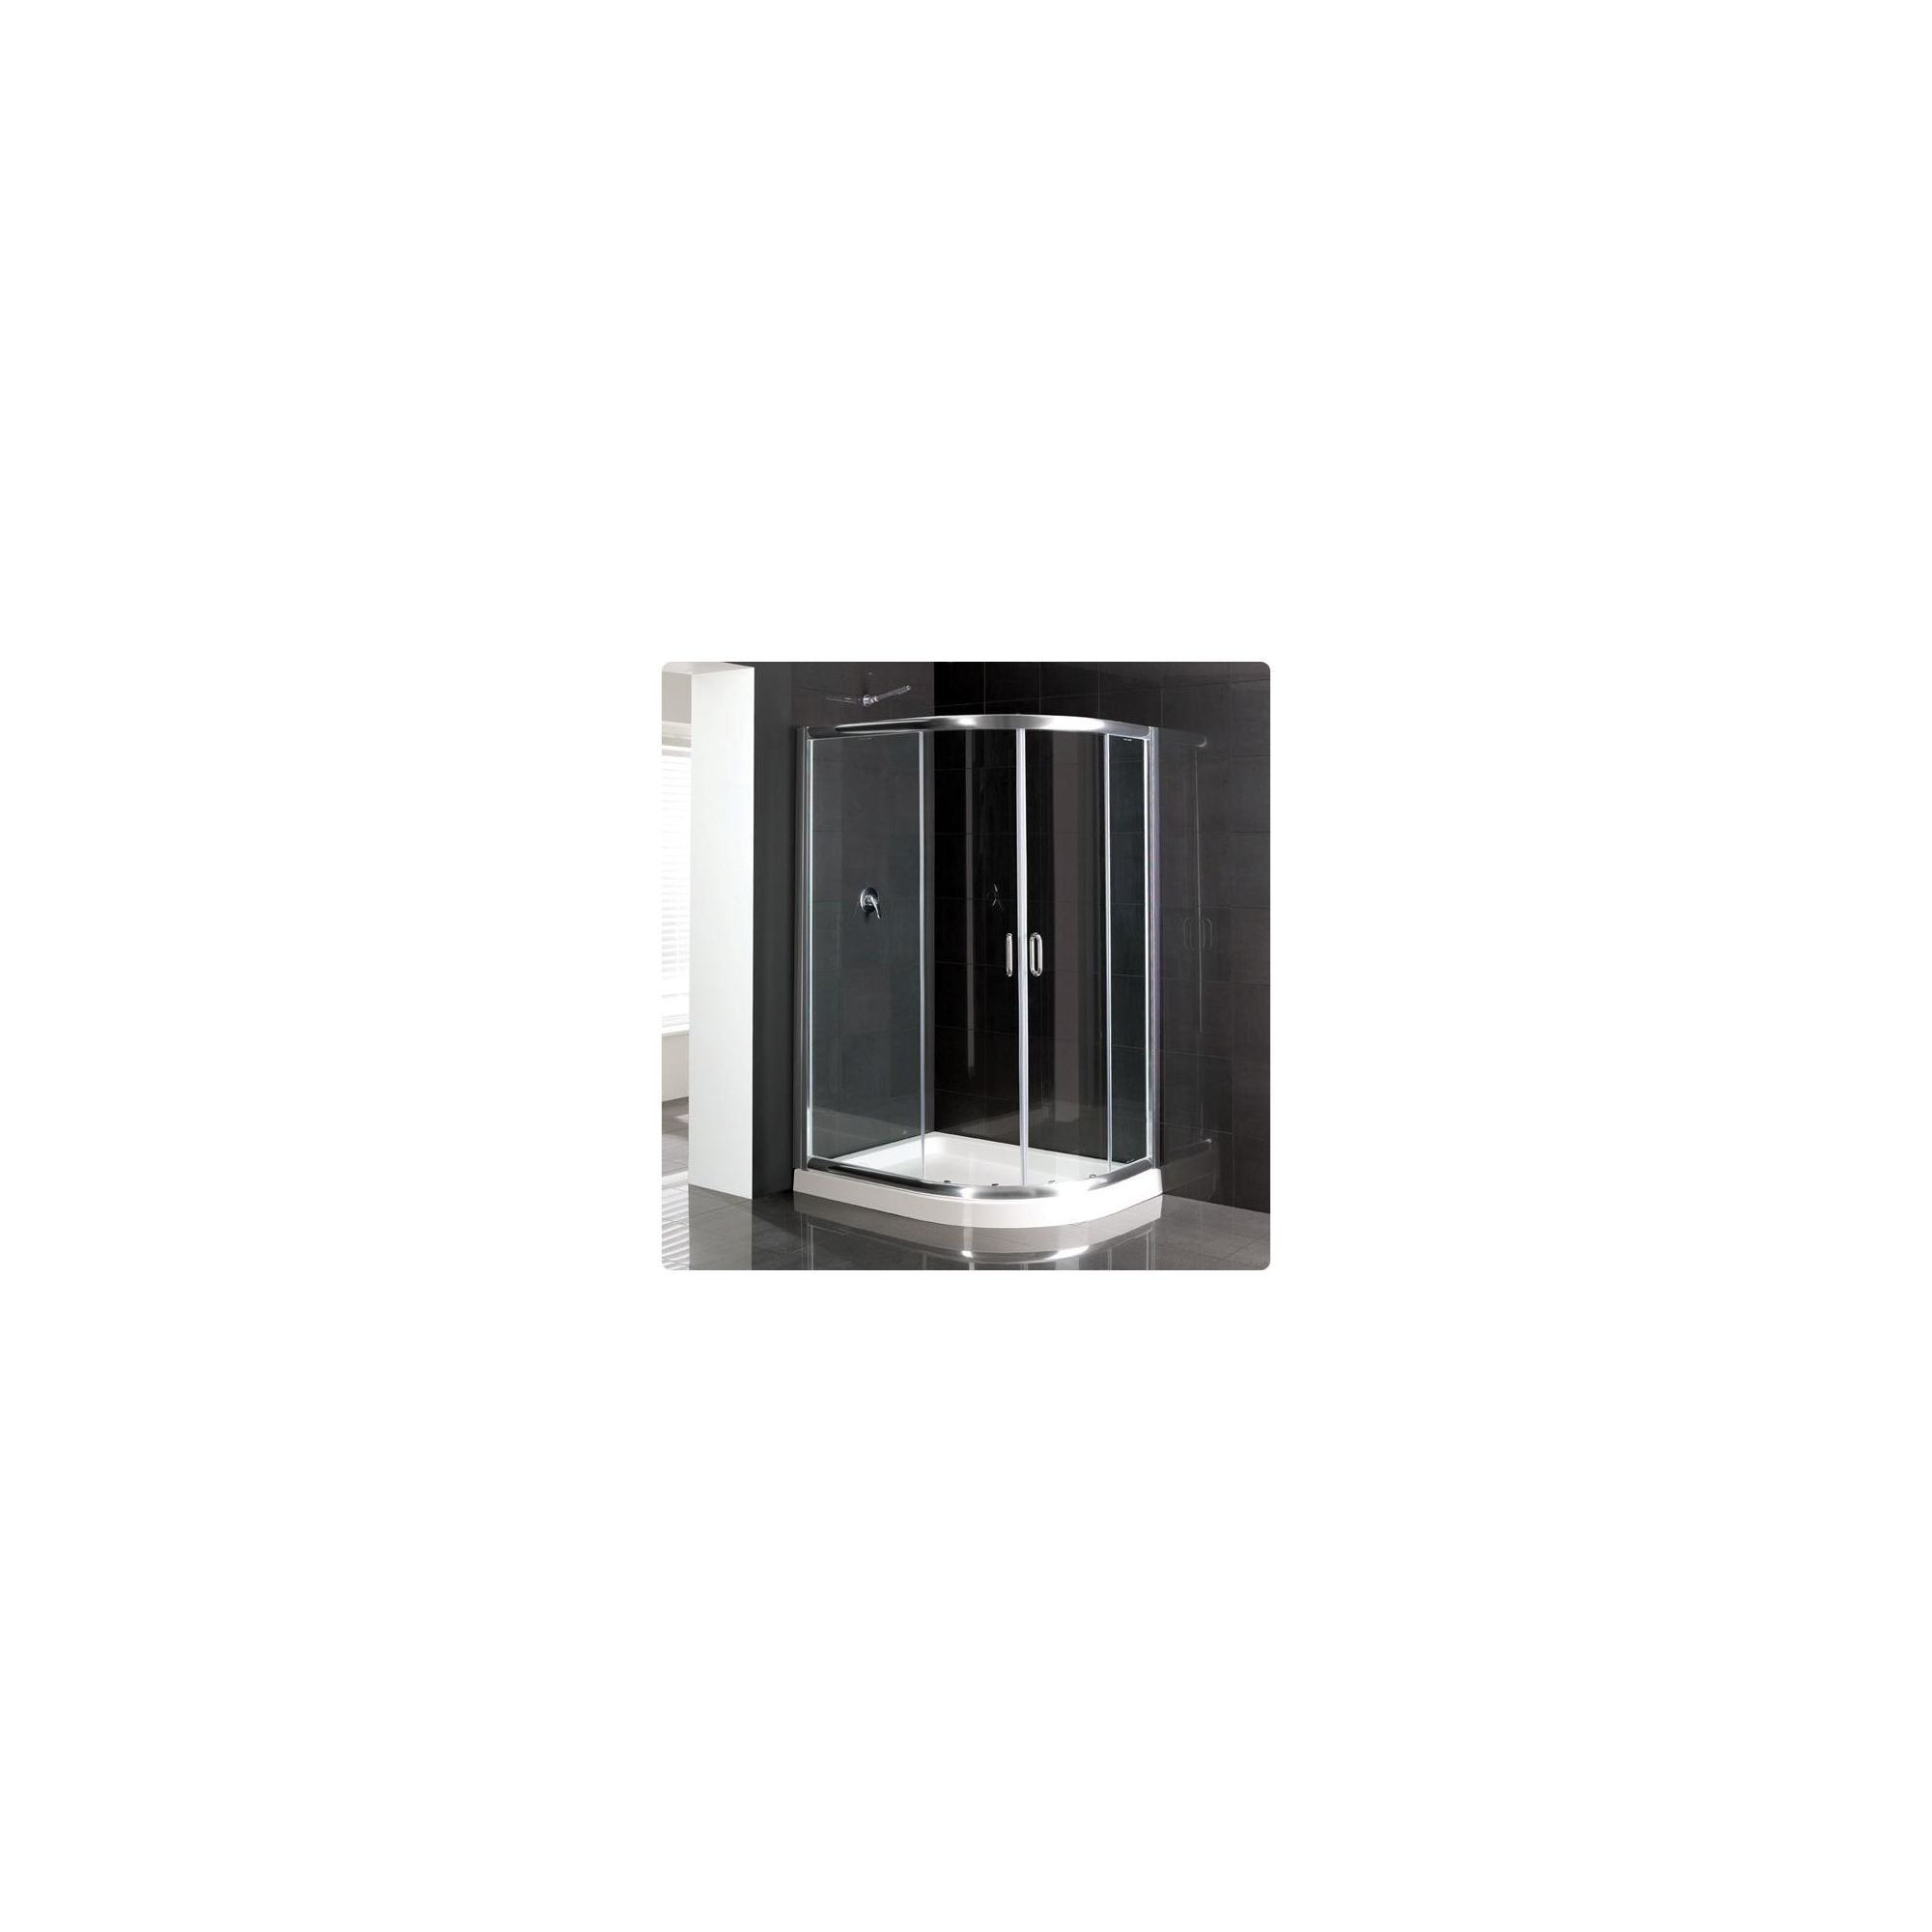 Duchy Elite Silver Offset Quadrant Shower Enclosure (Complete with Tray) 1000mm x 900mm, 6mm Glass at Tesco Direct